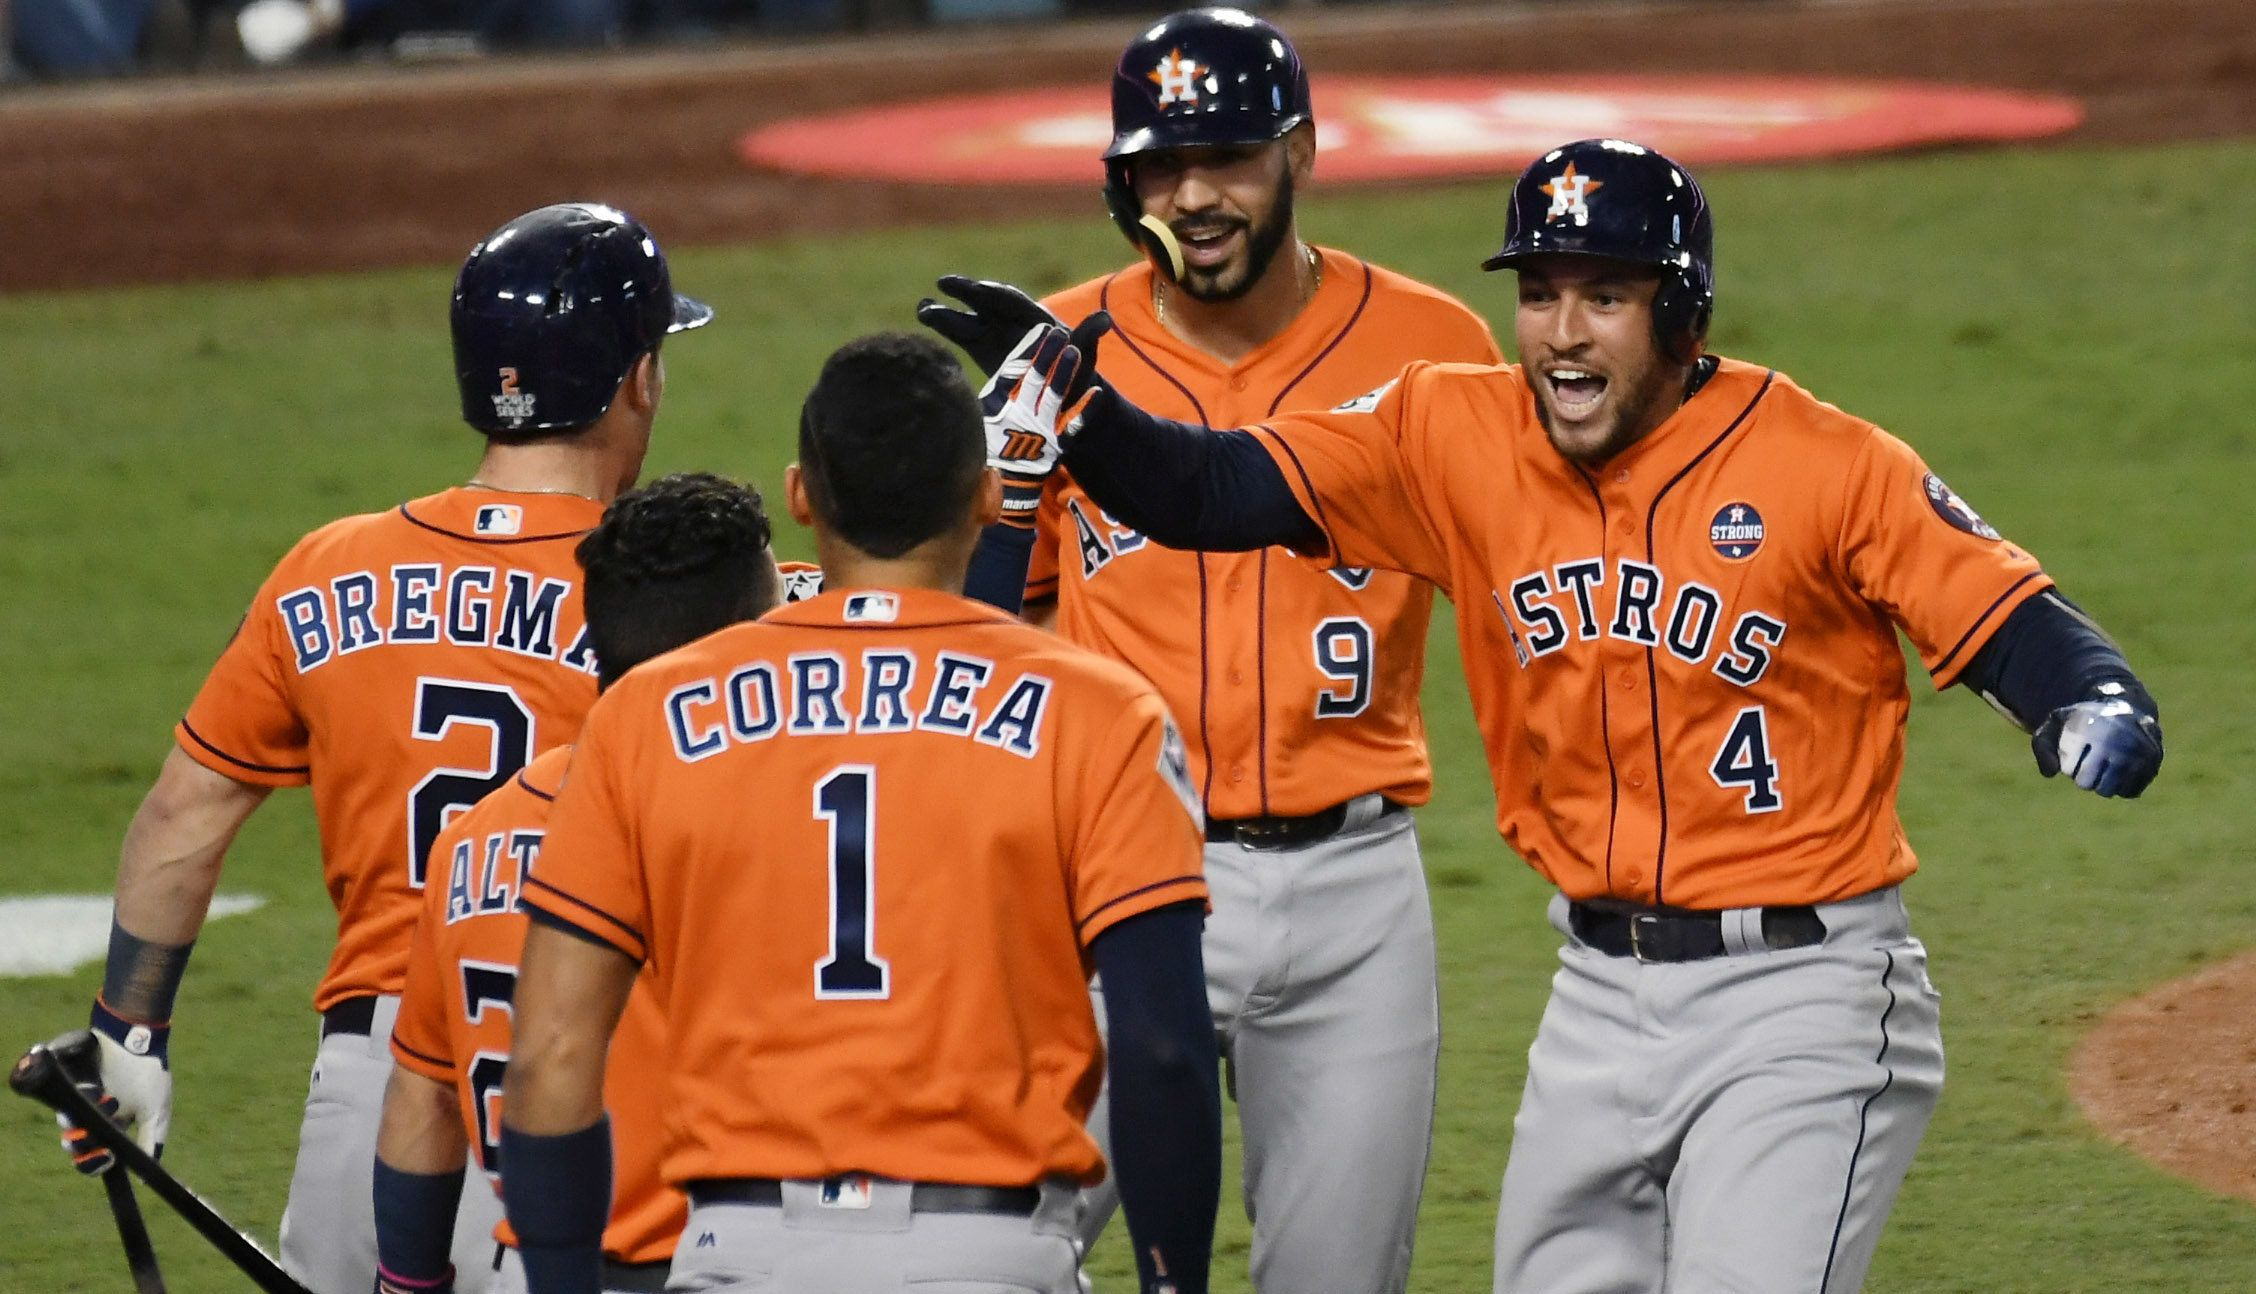 Houston Astros center fielder George Springer (4) celebrates a two-run homer in the second inning.